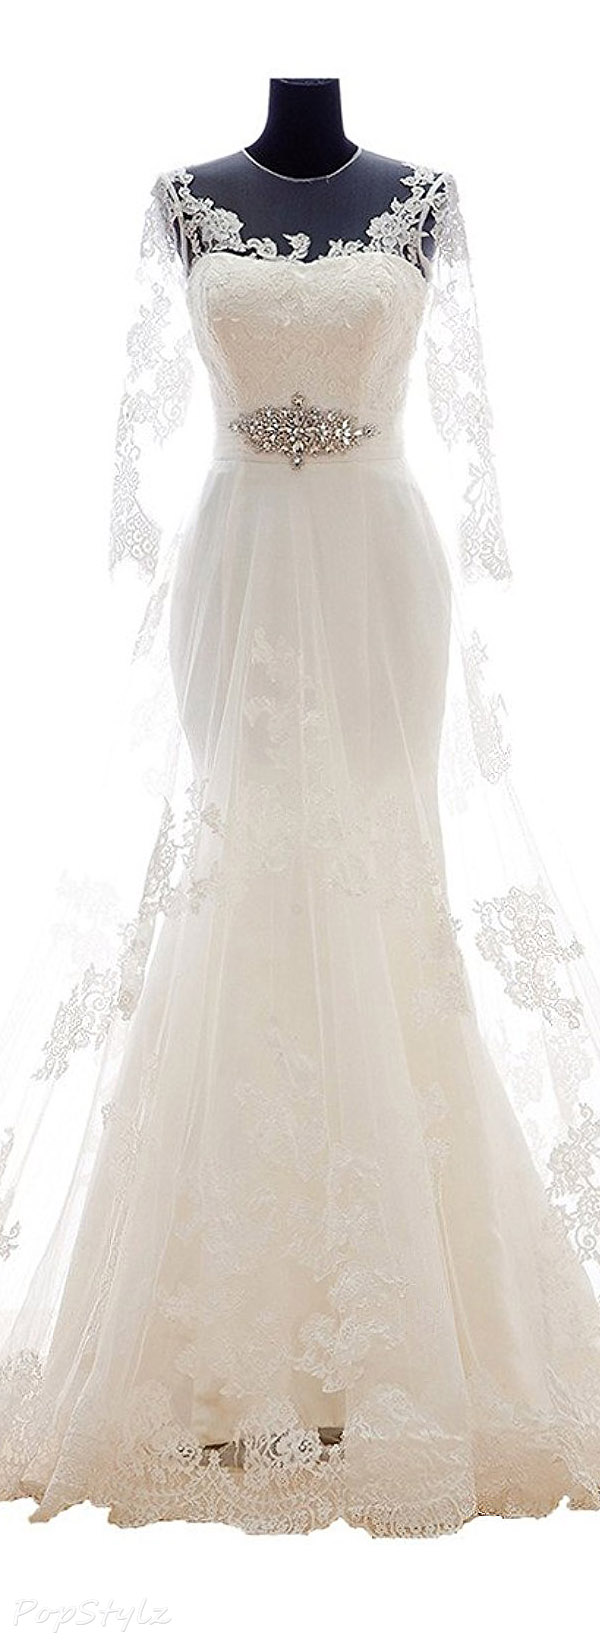 Snowskite A-line V Neck Vintage Lace Wedding Gown